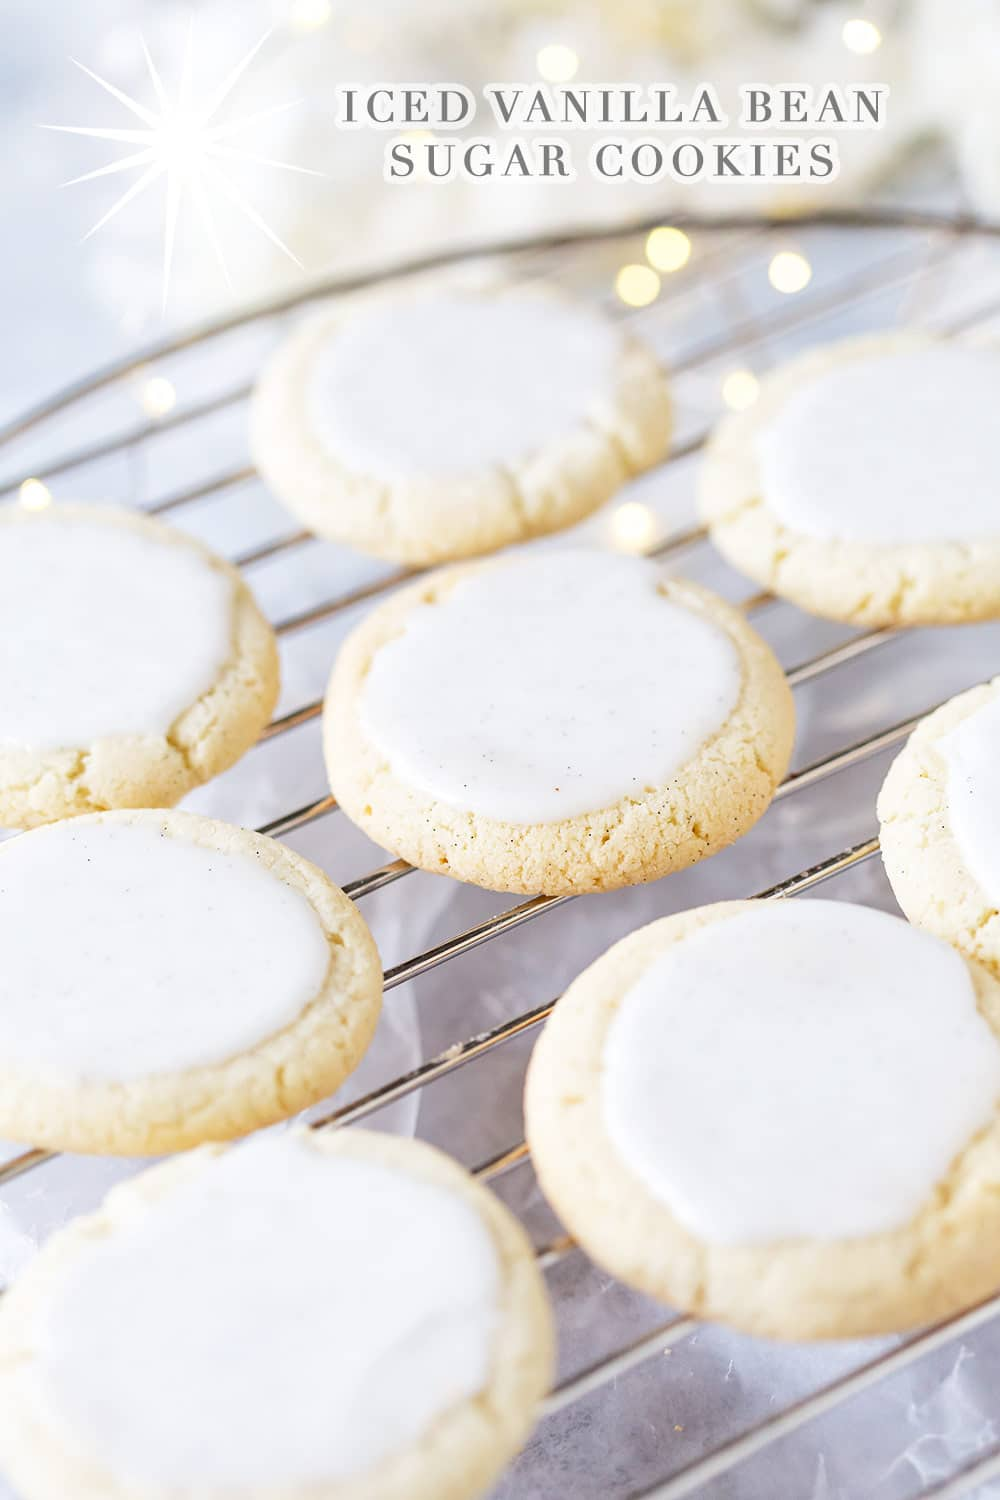 Iced vanilla bean sugar cookies!